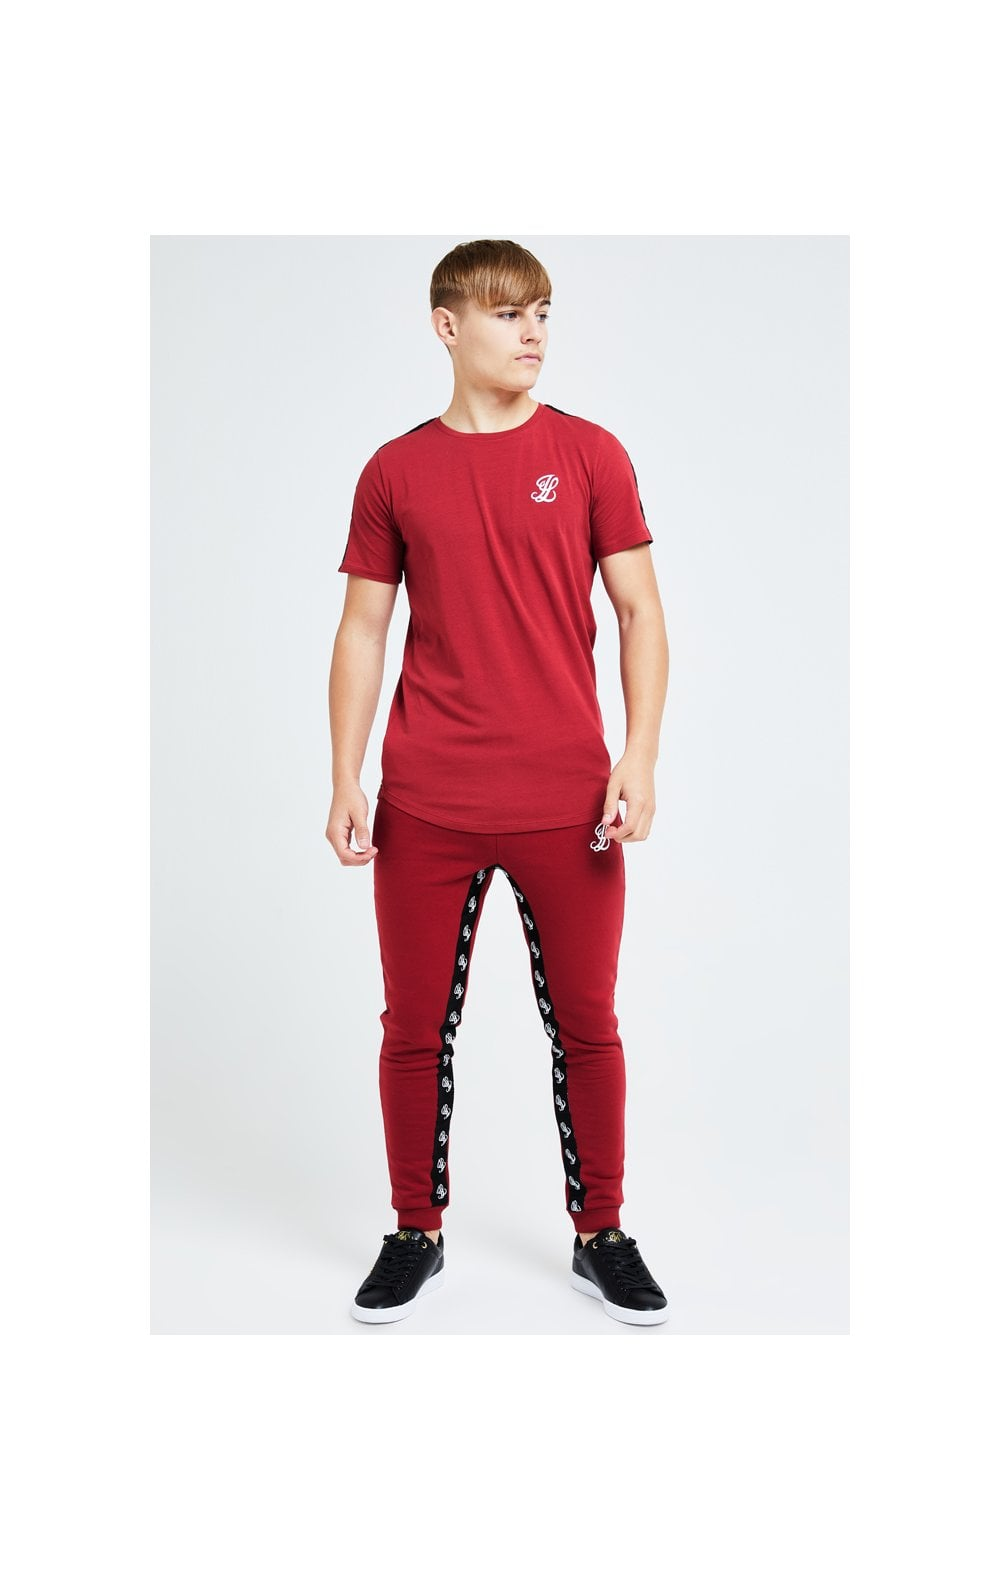 Illusive London Gravity Tape Tee - Red (5)